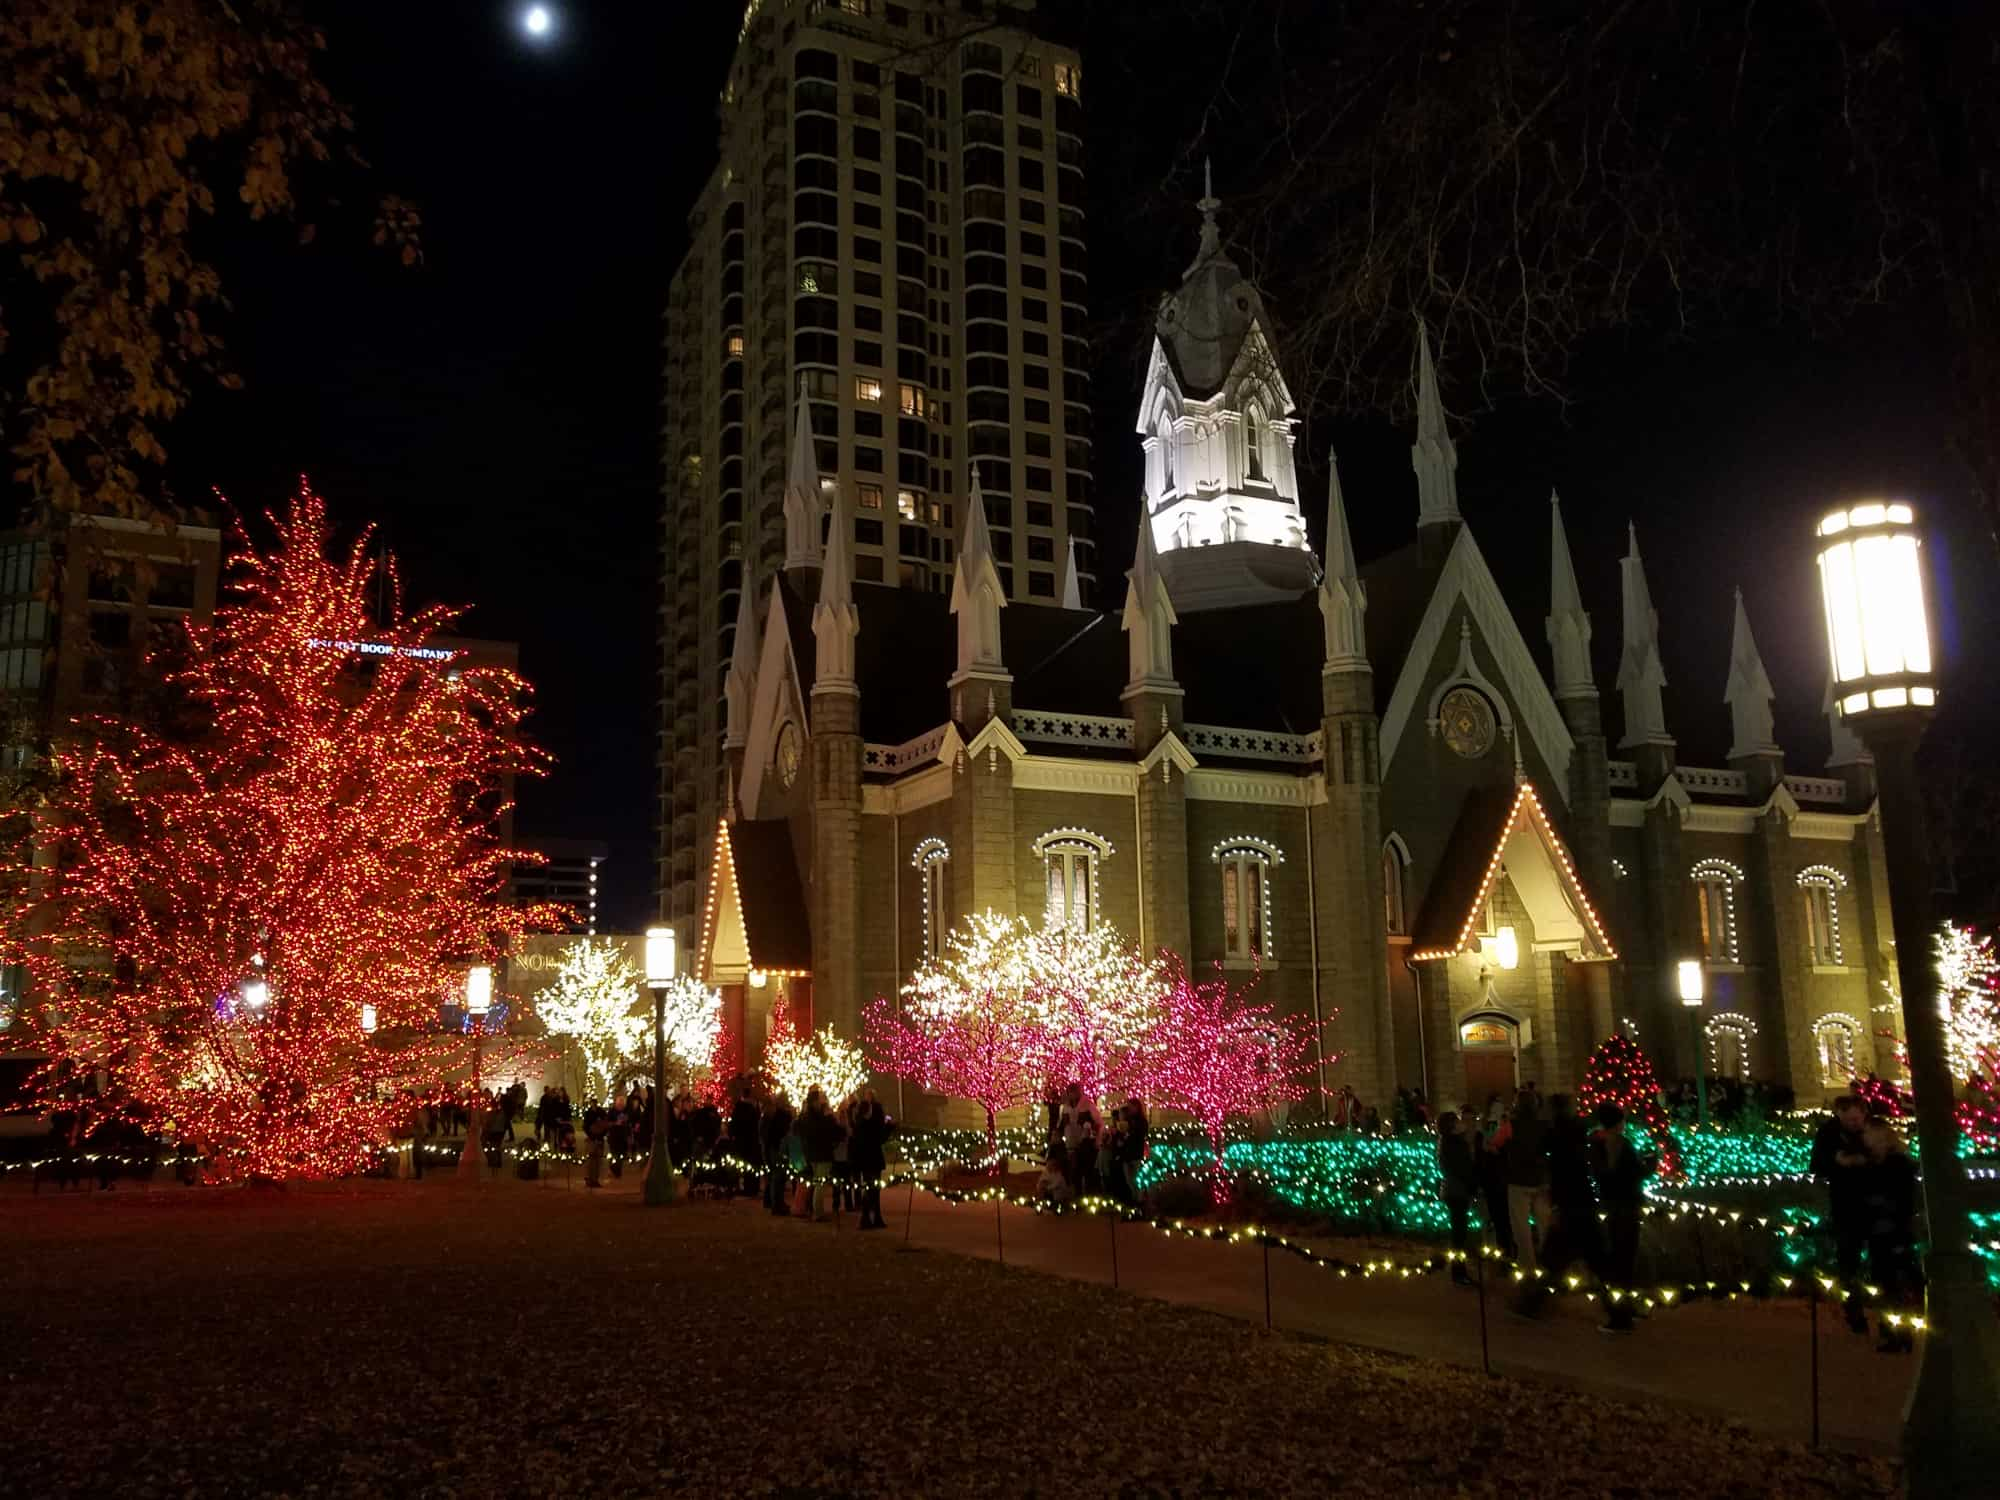 salt-lake-city-christmas-events-temple-lights-by-